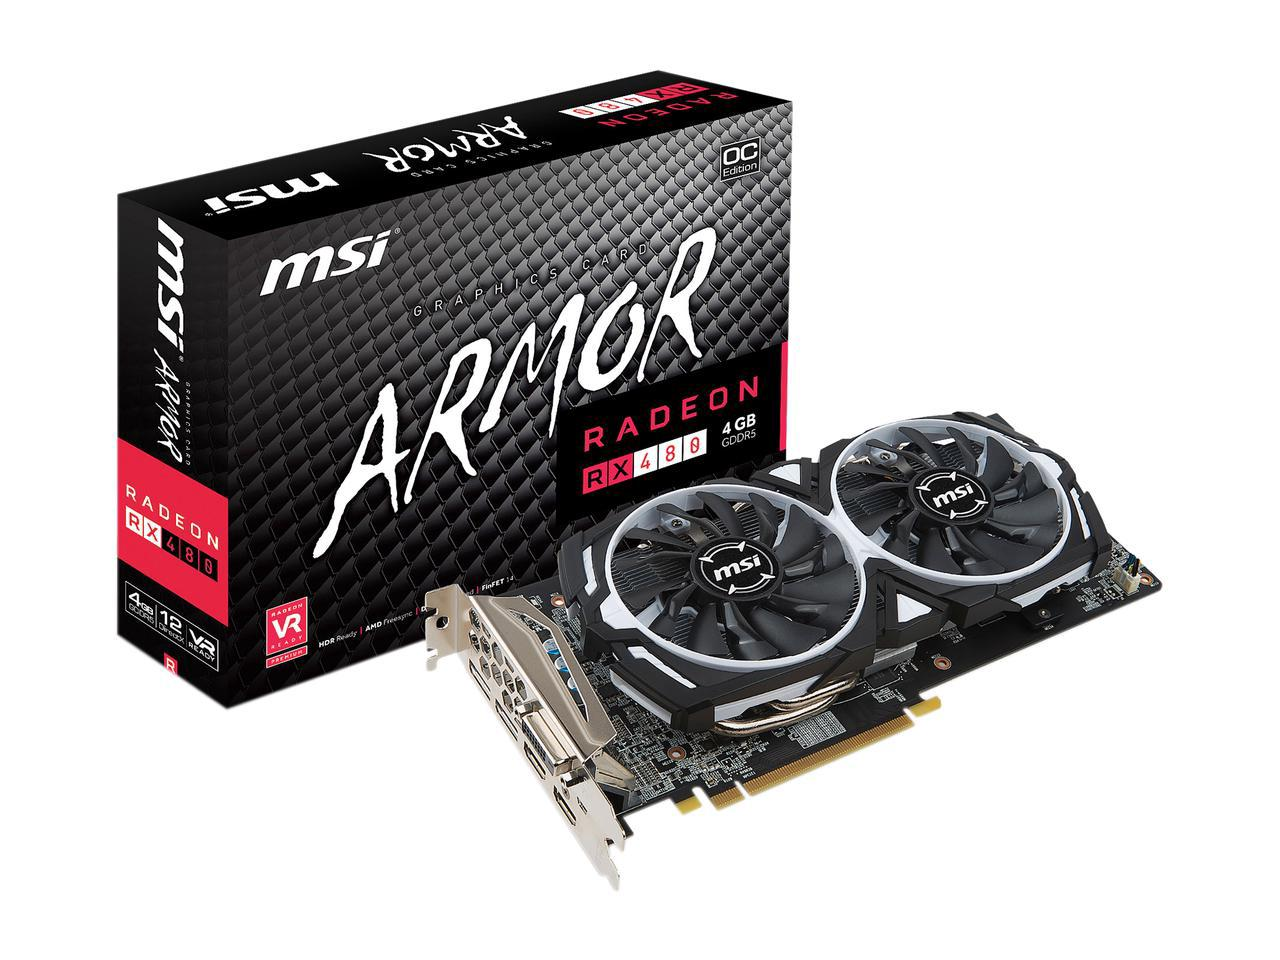 AMD RX 480 amazing deal for today